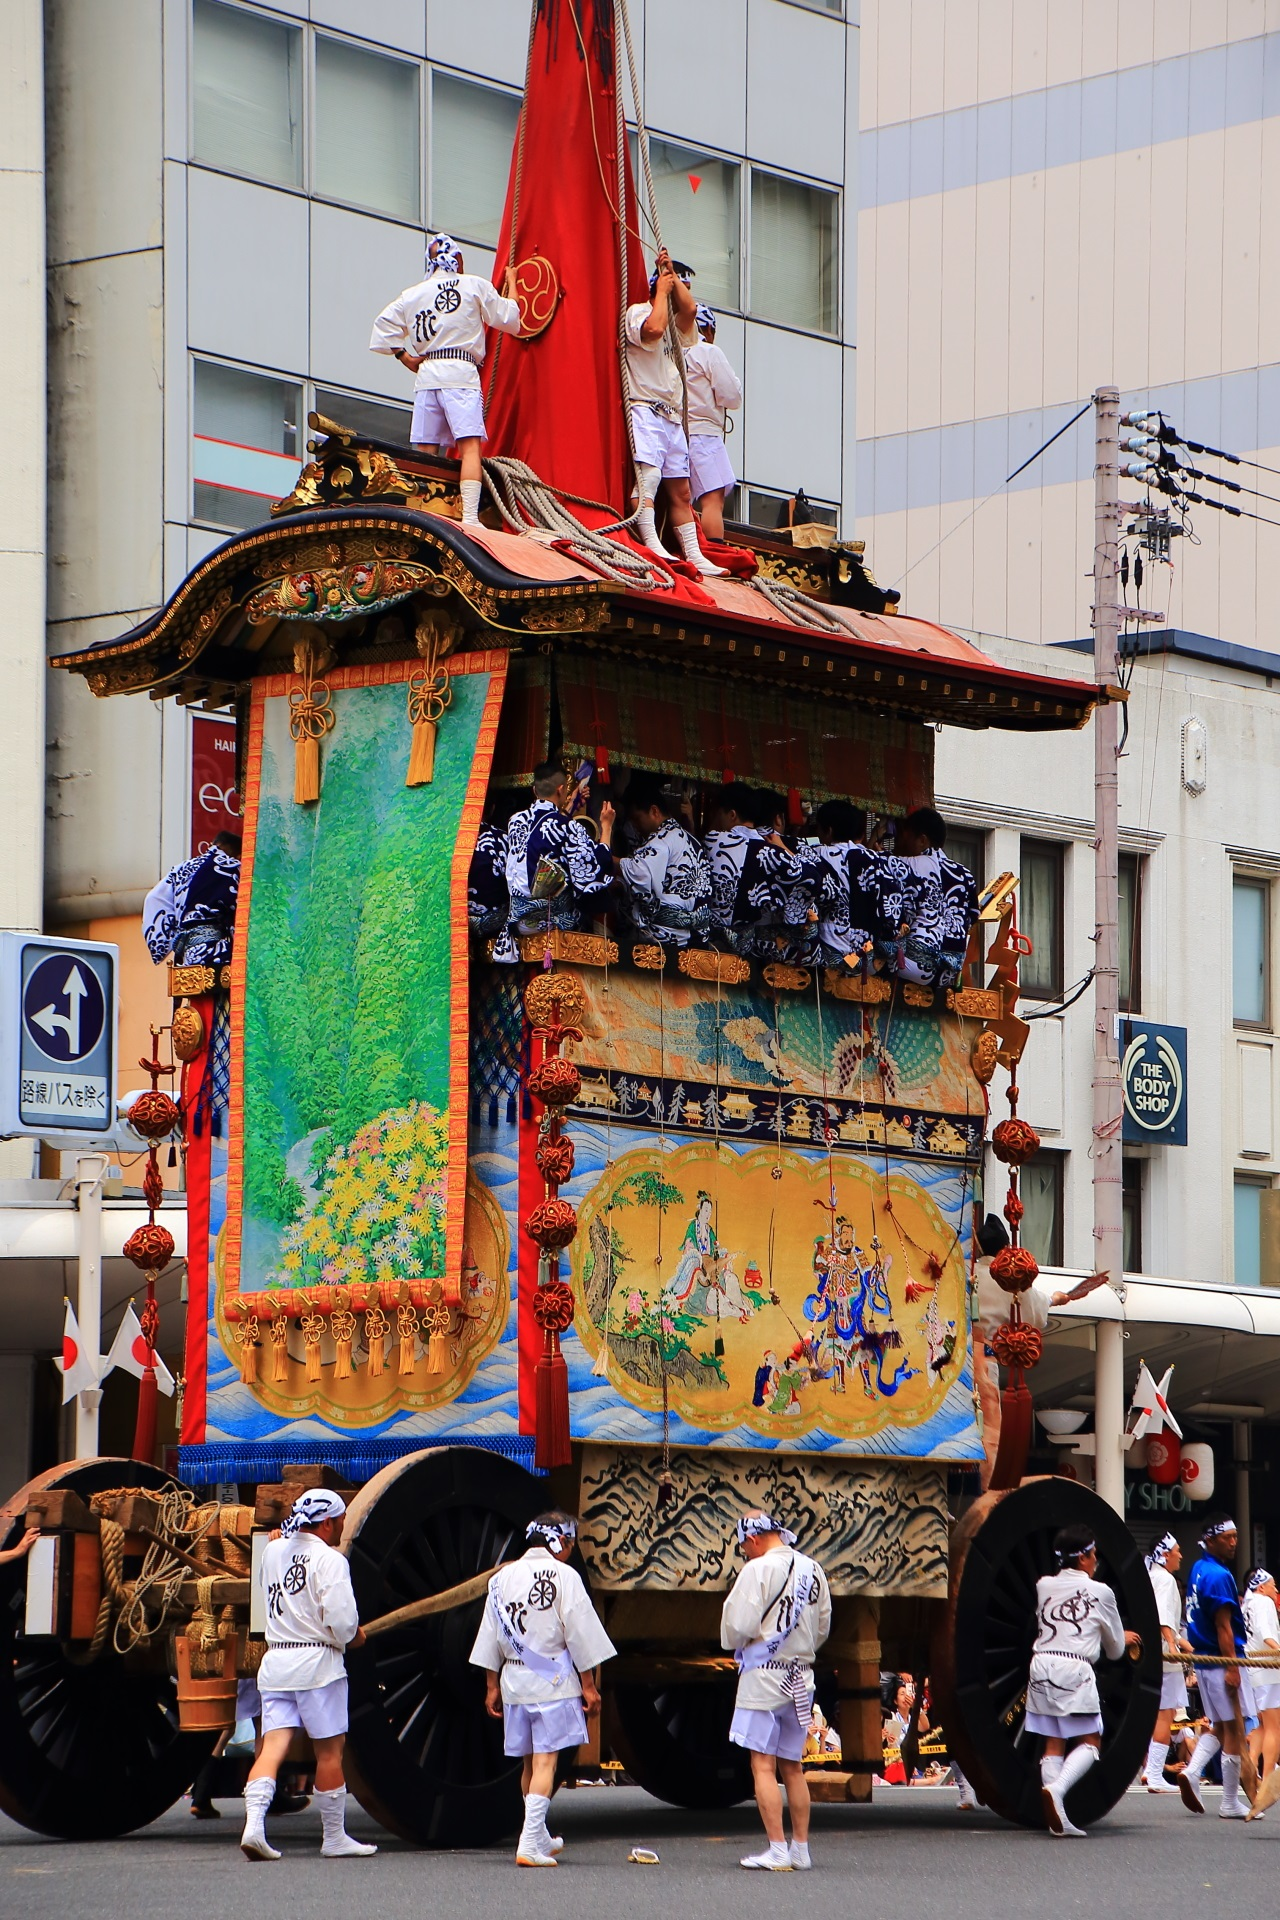 Yamahoko-Jyunko to be held at the Kyoto Gion-Matsuri Festival